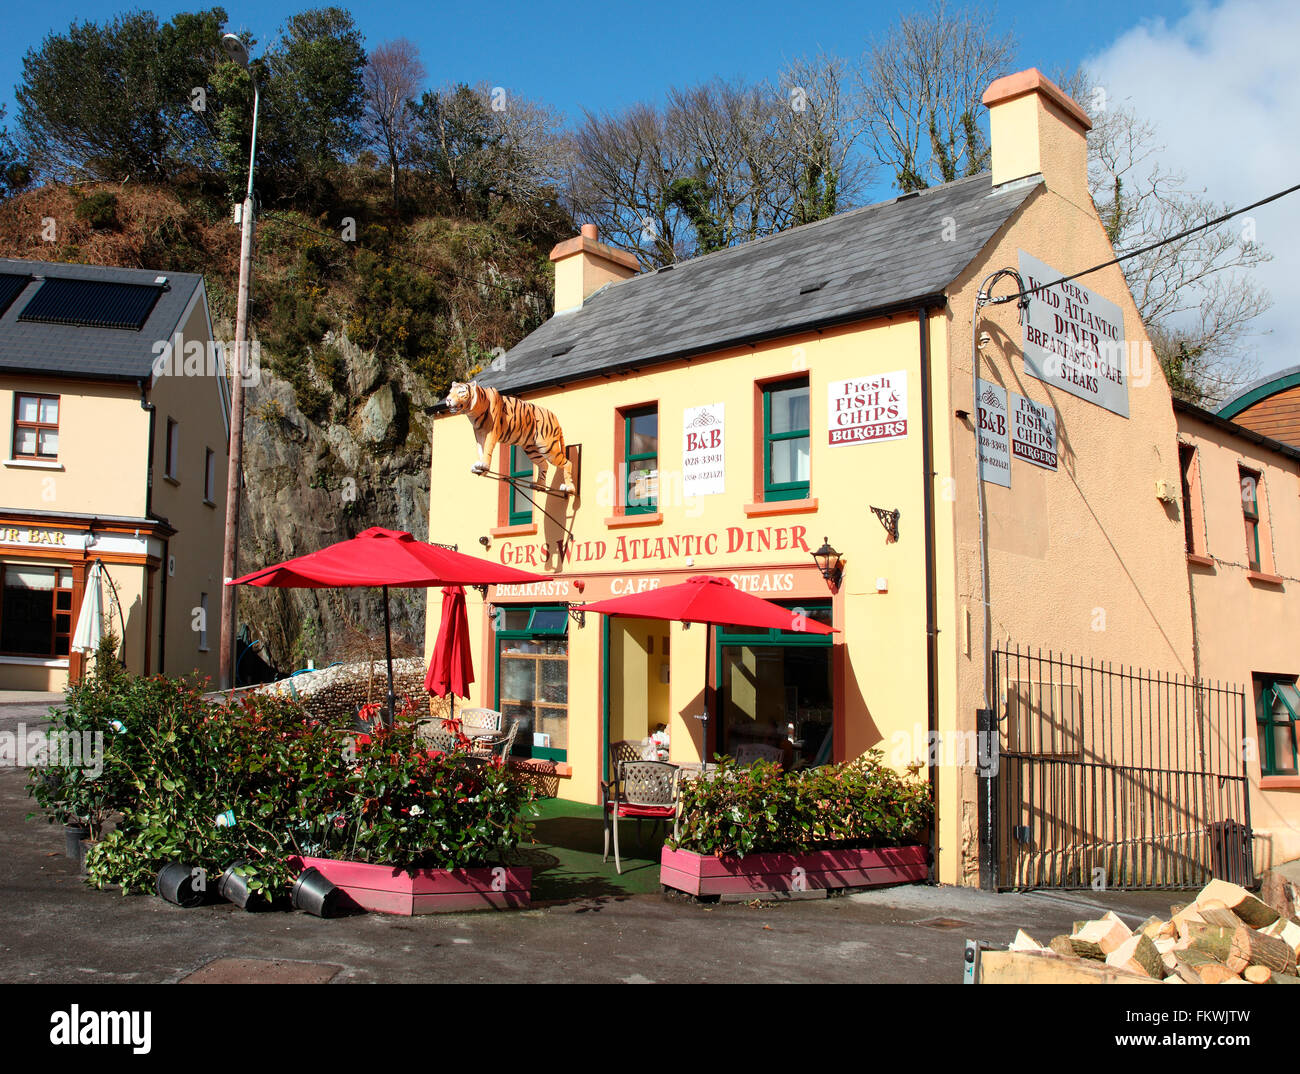 Ger's Diner and B&B in the village of Leap, County Cork, Ireland - Stock Image